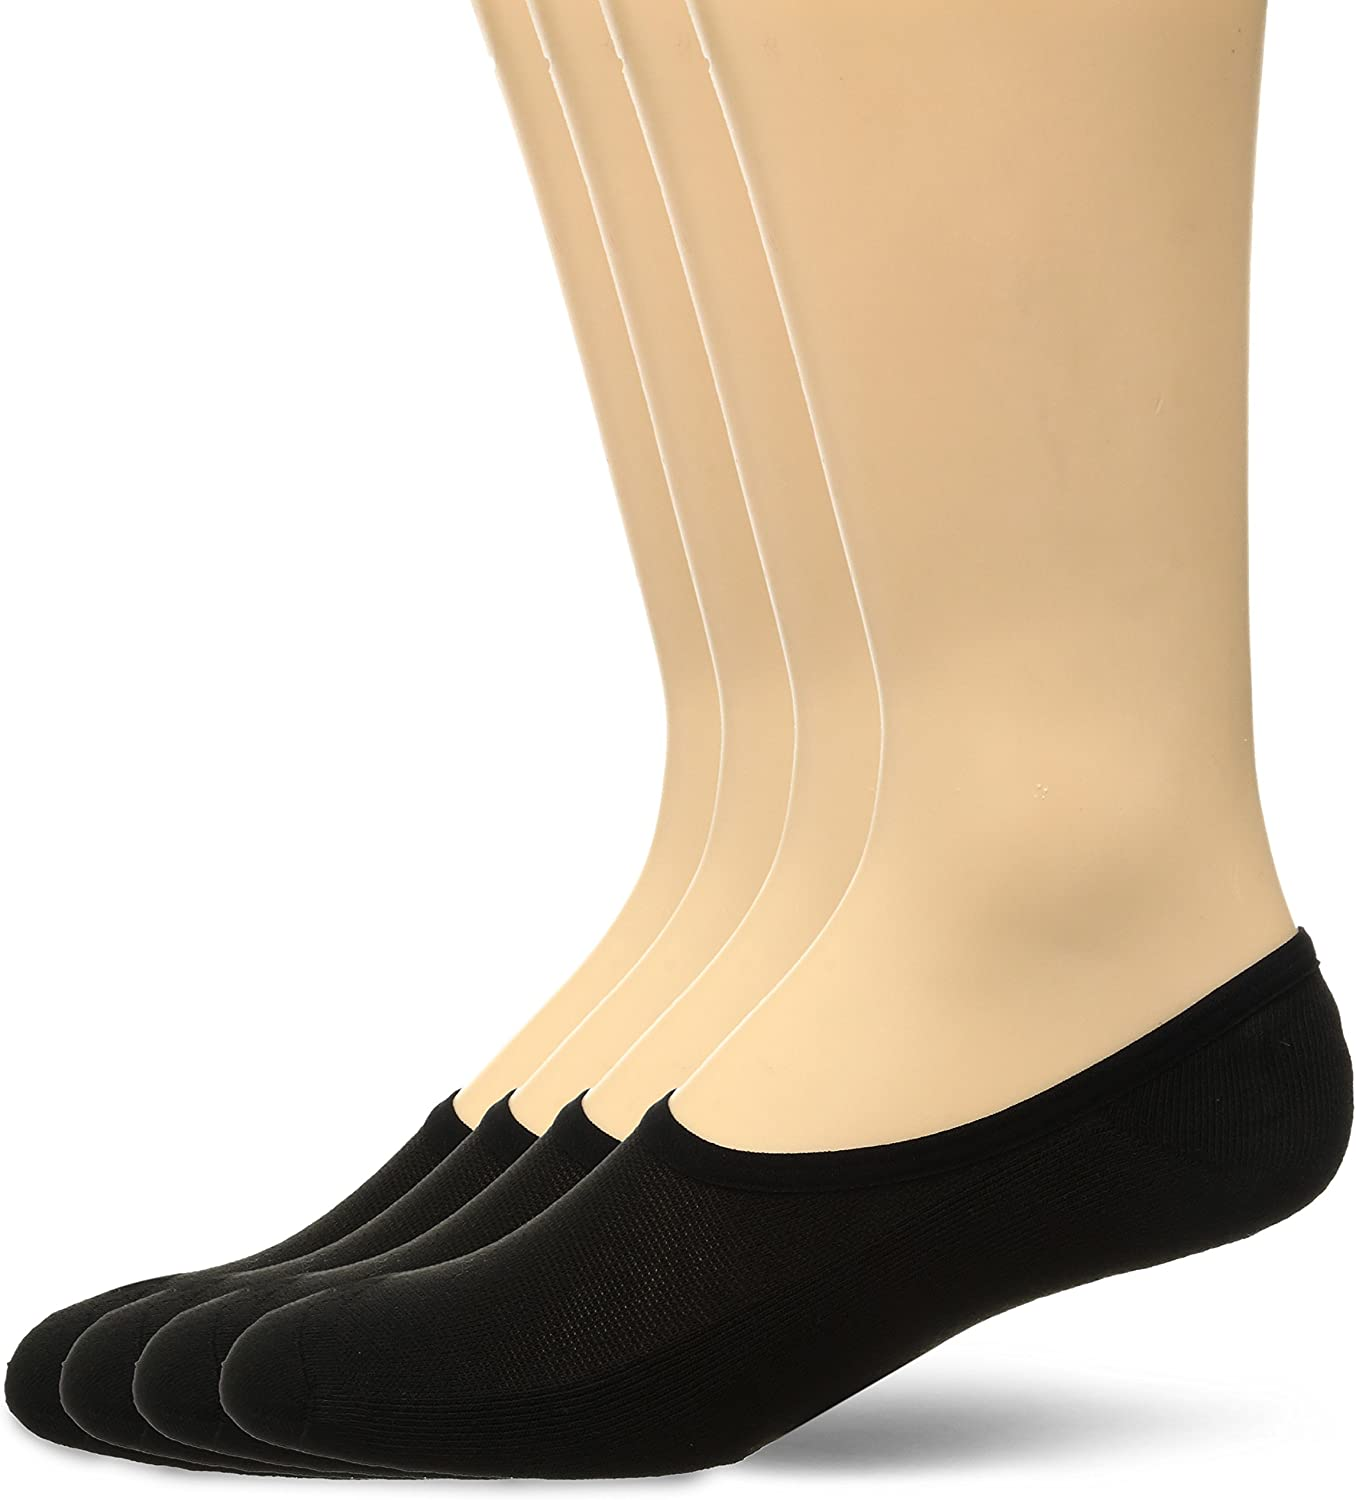 Fruit of the Loom Men's Invisible No Show Breathable Liner Socks (4 Pack)